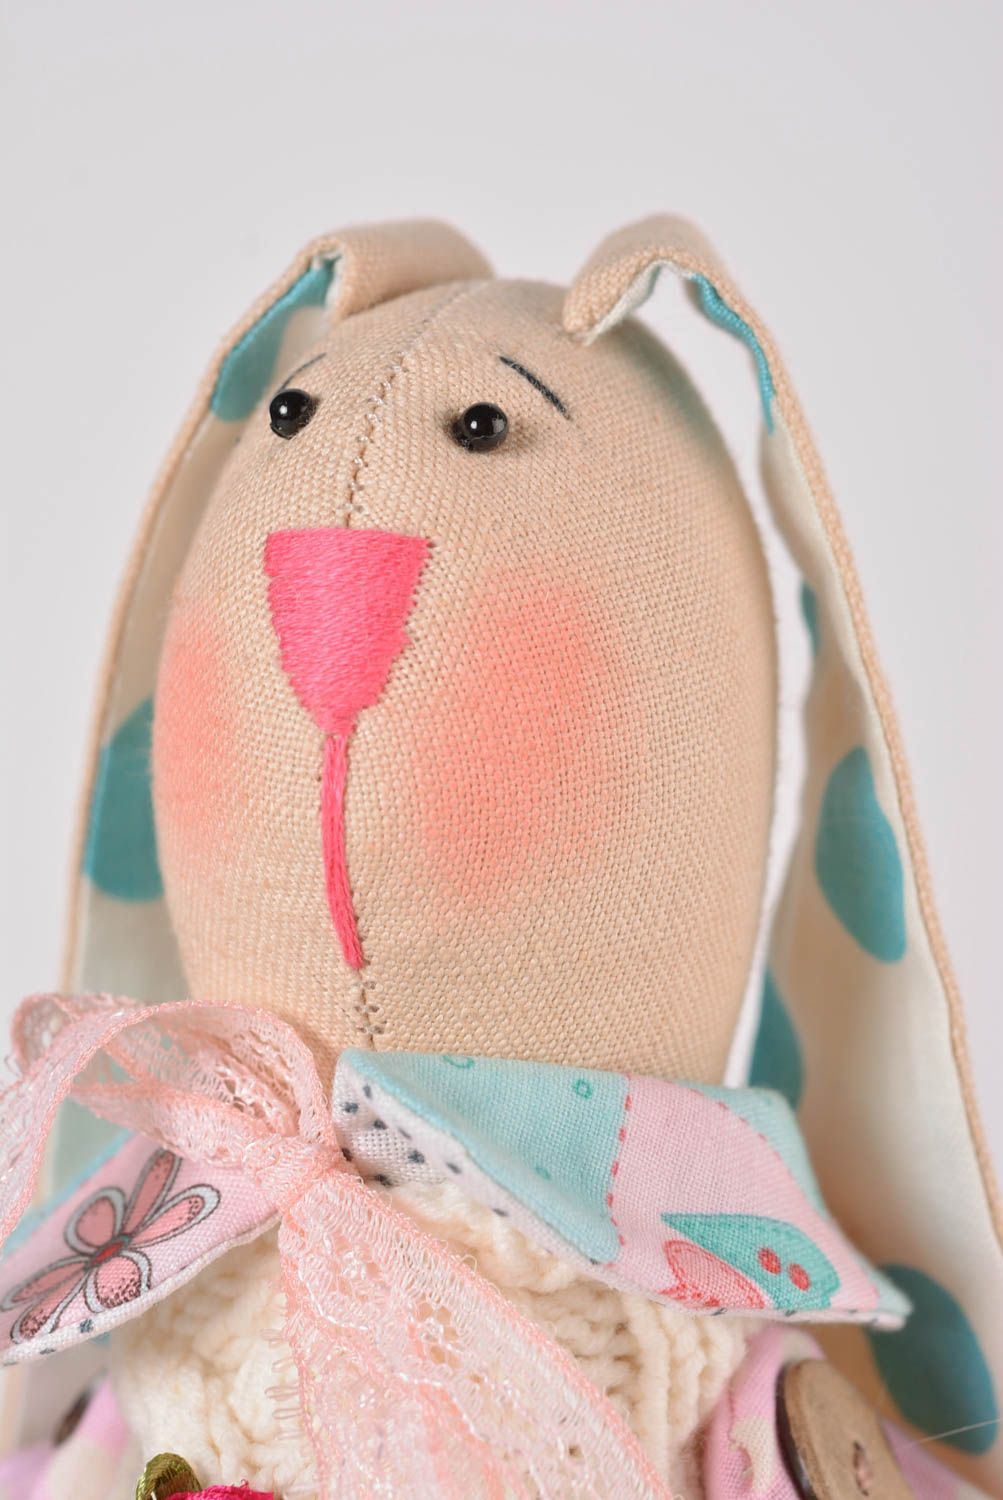 soft toys Beautiful handmade soft toy ideas best toys for kids birthday gift ideas - MADEheart.com